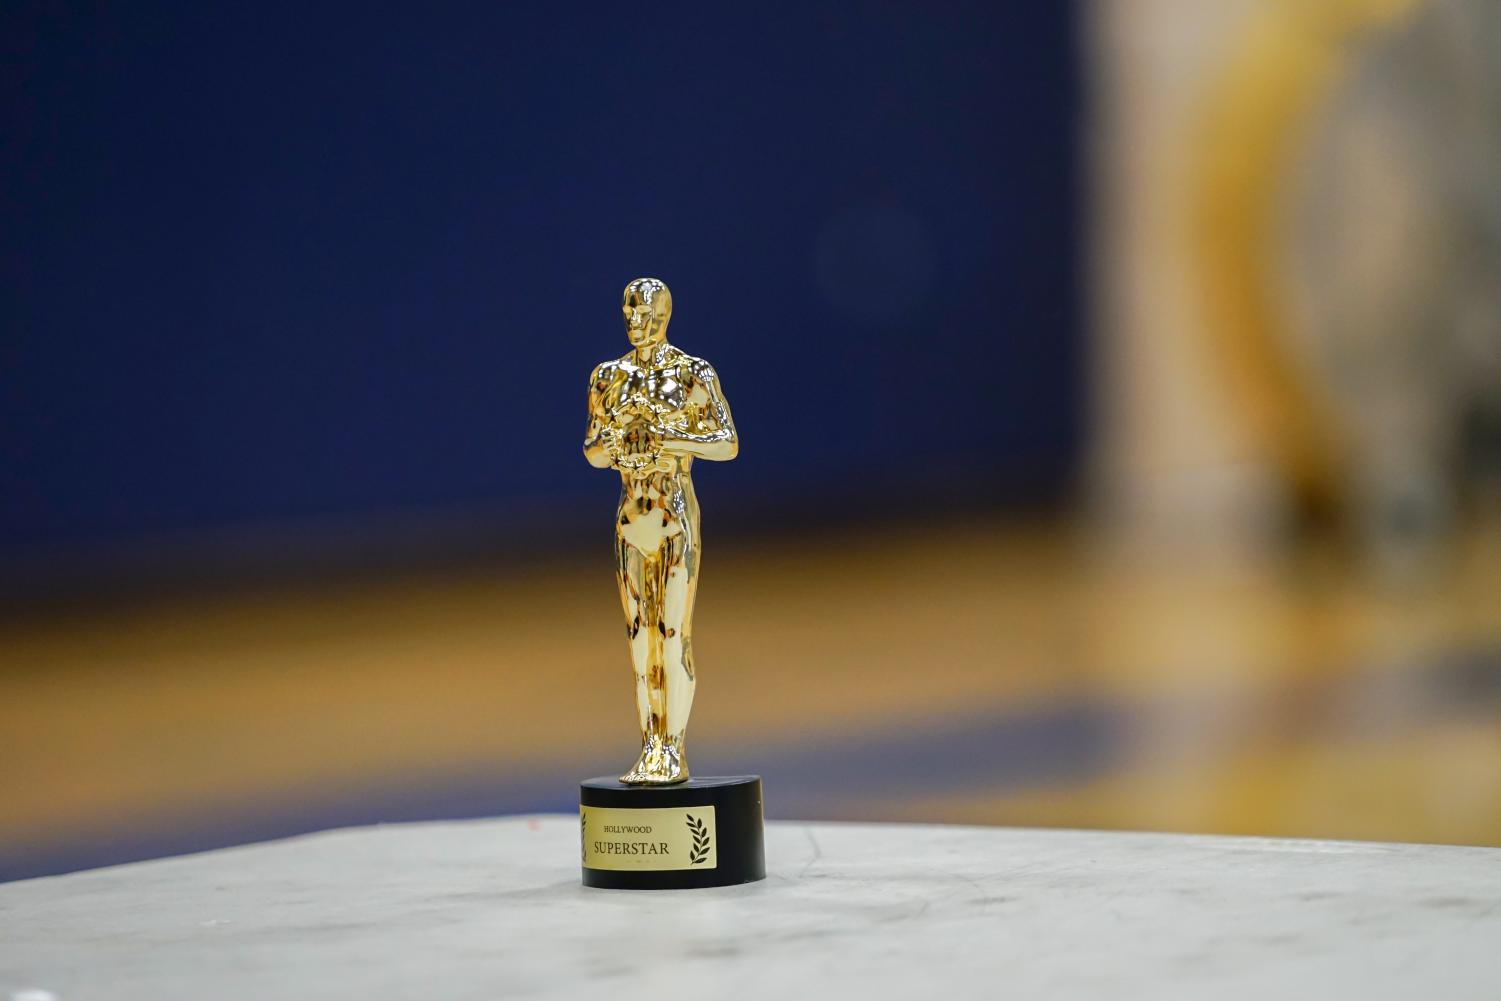 The+Oscars+trophy+sits+quietly+on+the+table+waiting+to+be+claimed+after+the+theme+of+this+year%E2%80%99s+theme+night+was+unveiled.